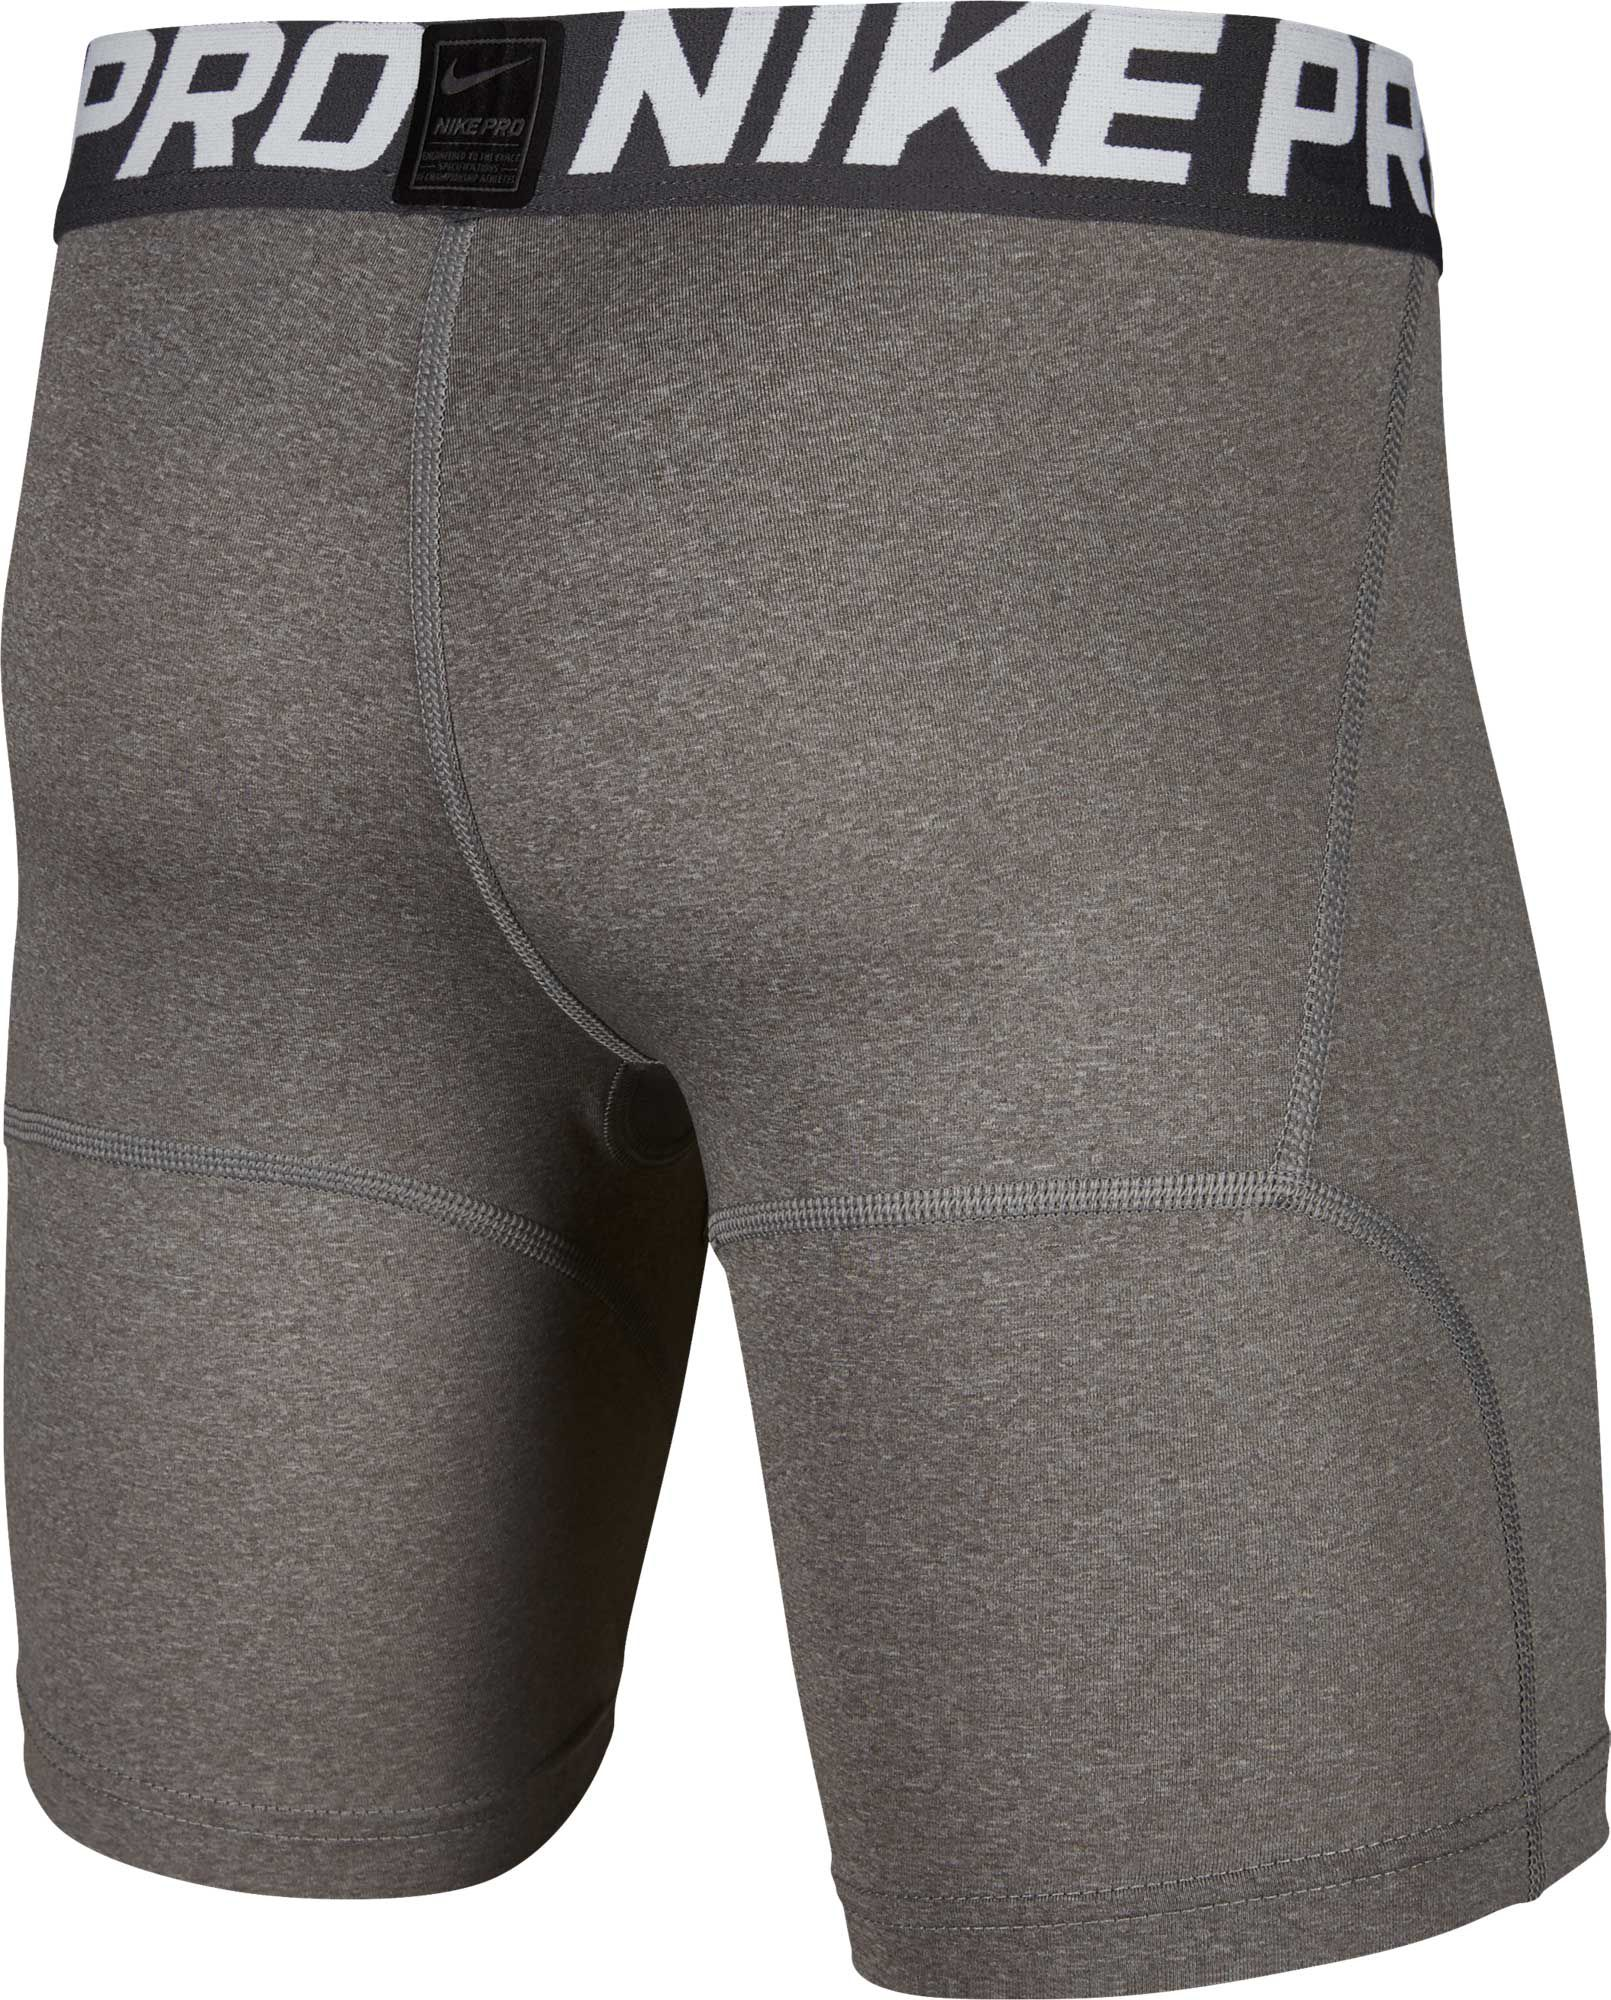 nike youth compression shorts